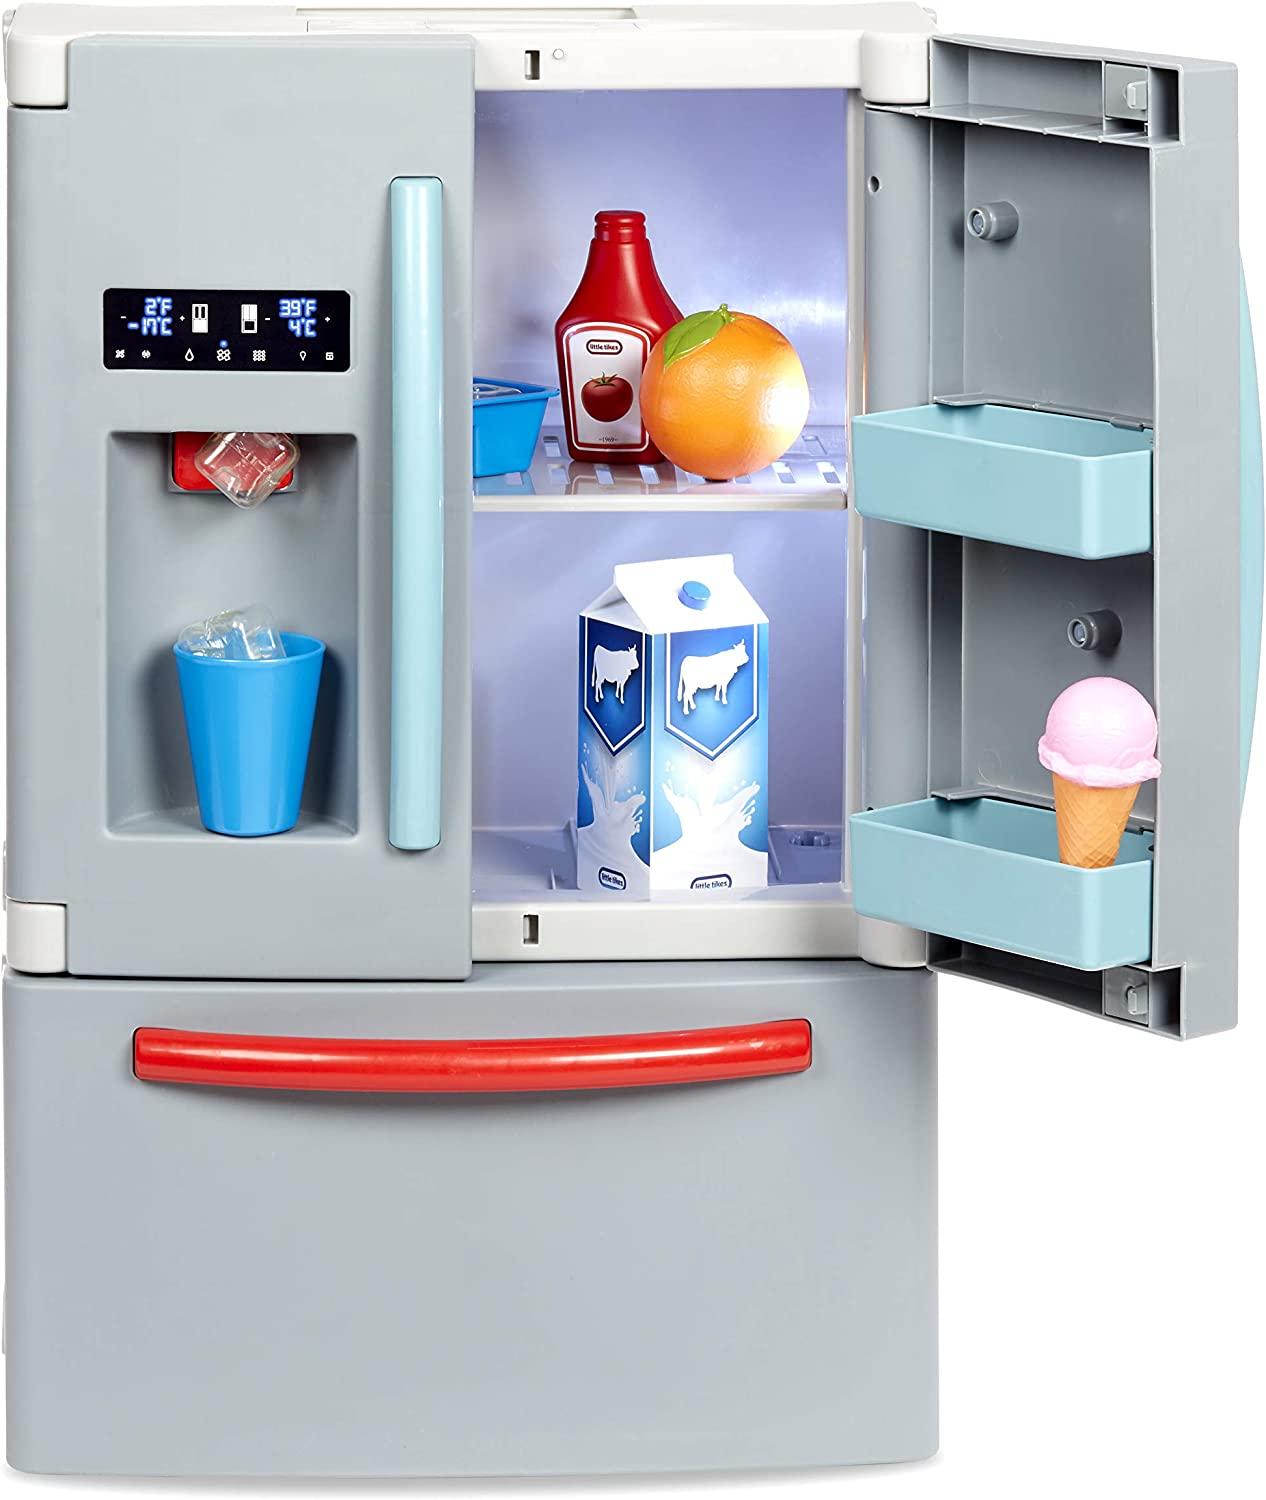 Little Tikes First Fridge Refrigerator with Ice Dispenser Pretend Play Appliance for Kids, Play Kitchen Set with Kitchen Playset Accessories Unique Toy Multi-Color: Toys & Games